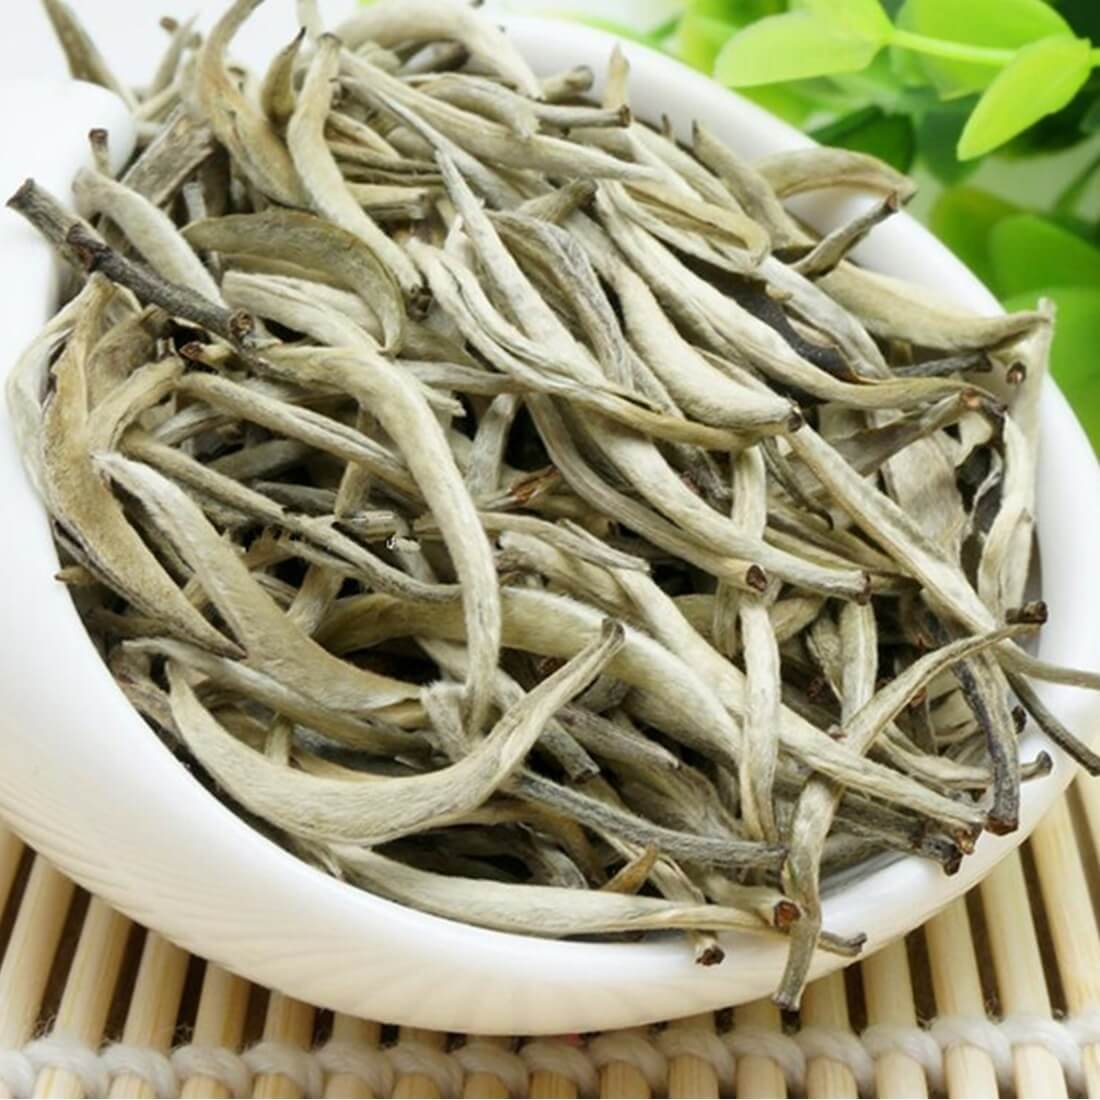 Premium Chinese Organic Bai Hao Yin Zhen Silver Needle White Leaf Tea - Direct Delivery From Fujjan China - Cholesterol Lowering Weight Loss Tea (500g (17.63 ounce))